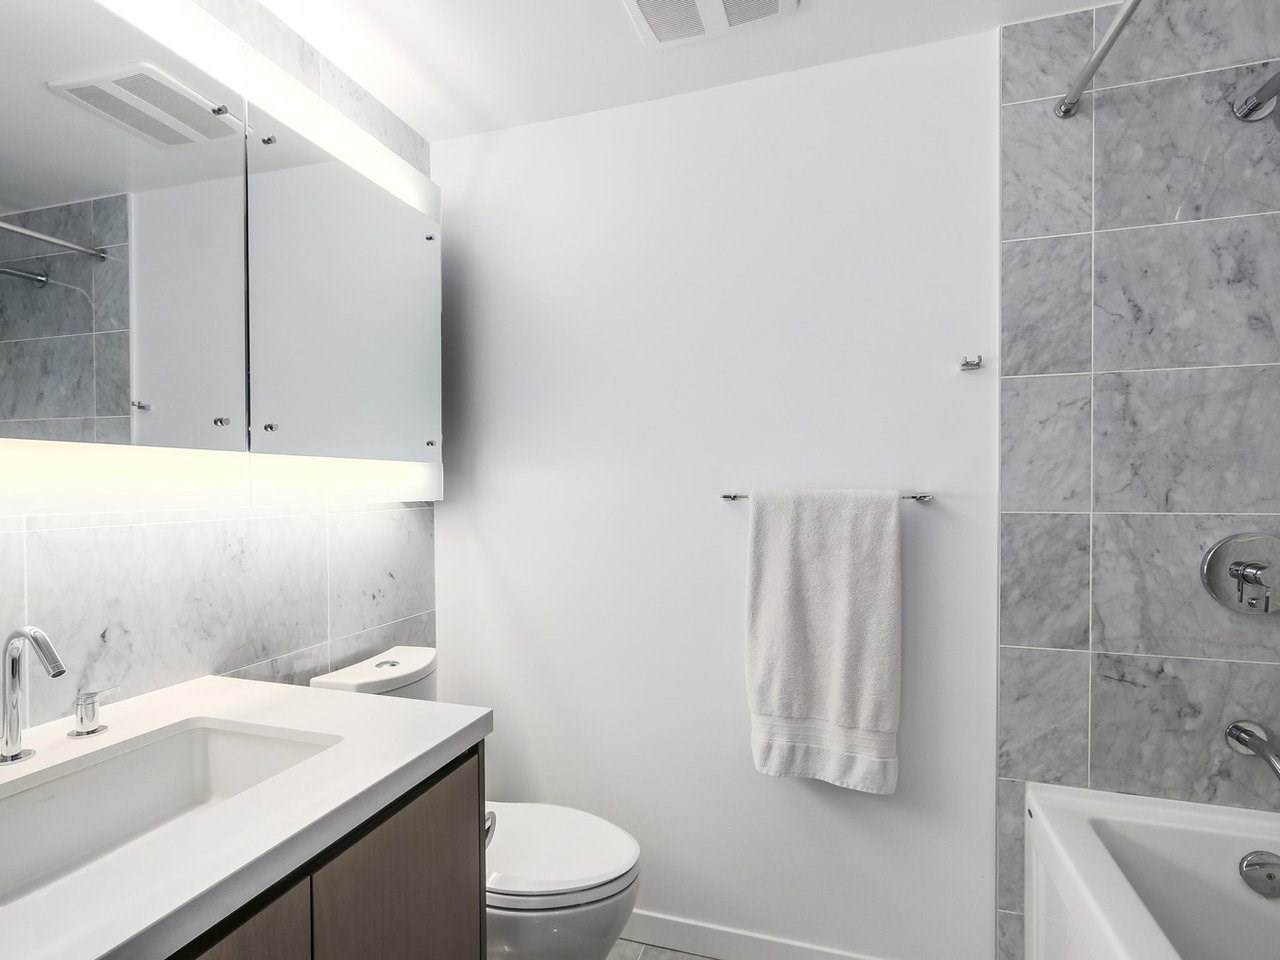 Condo Apartment at 303 68 SMITHE STREET, Unit 303, Vancouver West, British Columbia. Image 13